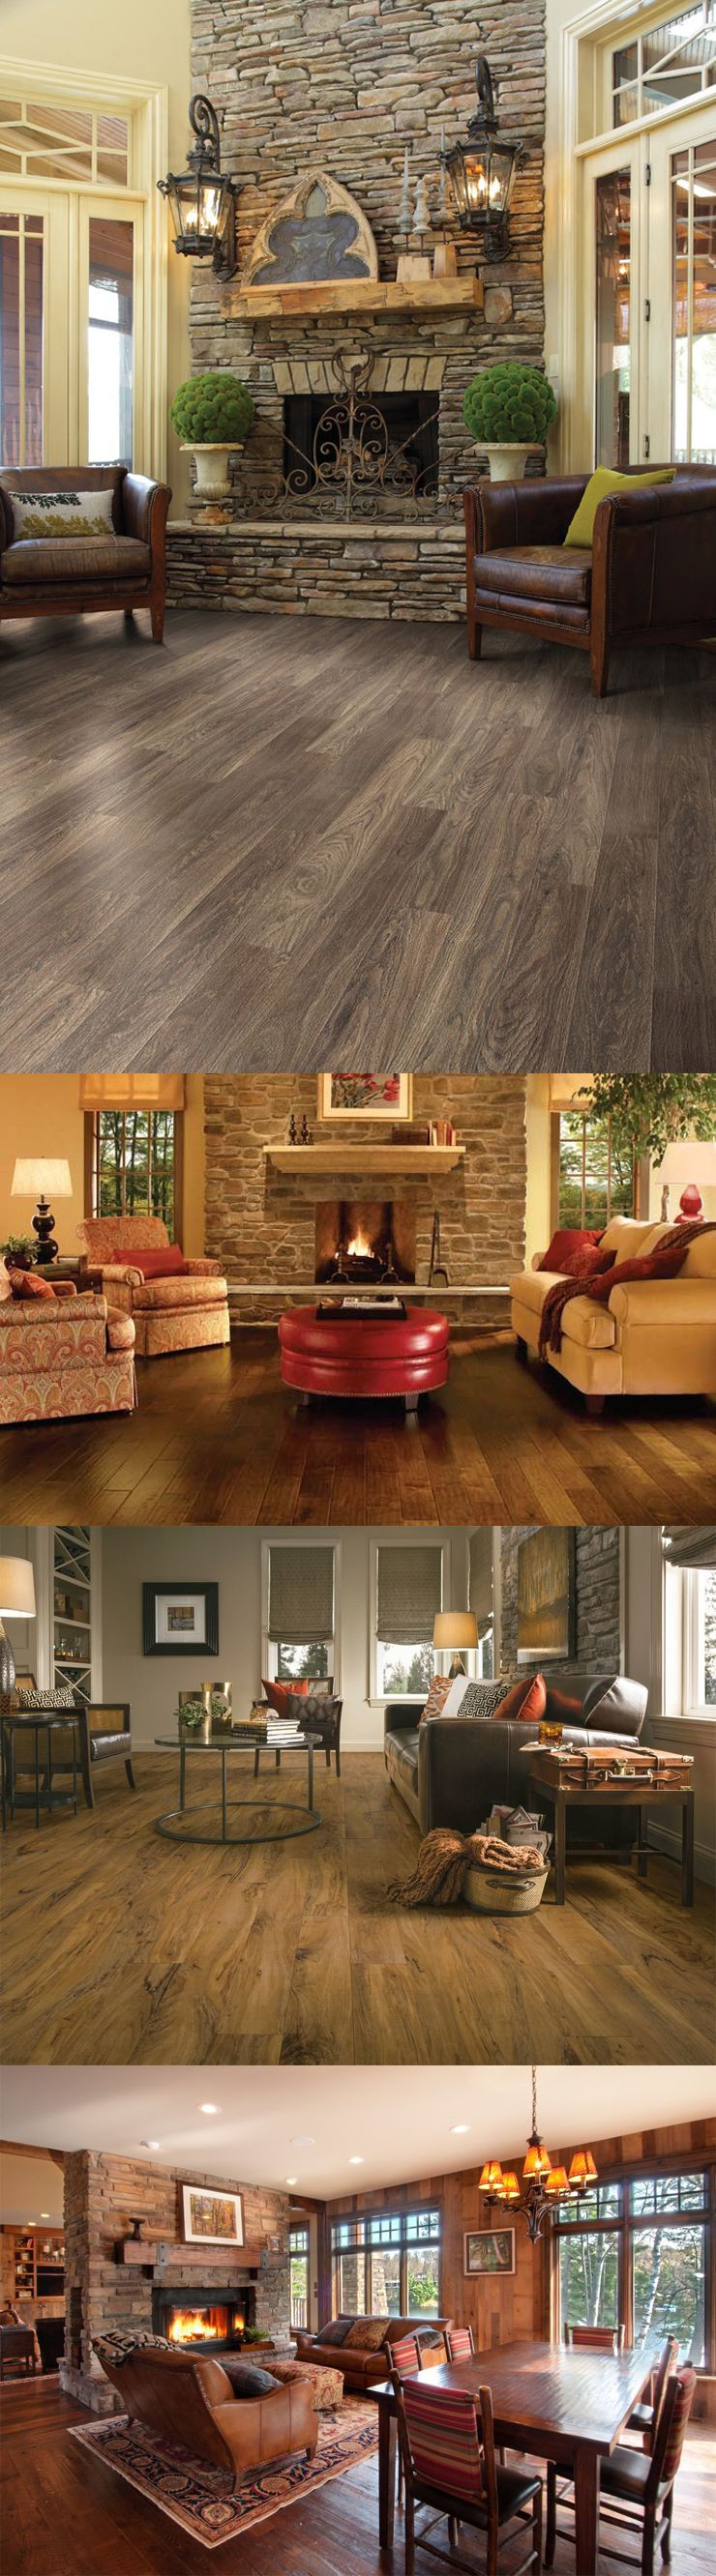 hardwood floor trends 2018 of vinyl flooring trends 20 hot vinyl flooring ideas 2018 plank in vinyl flooring trends 20 hot vinyl flooring ideas 2018 plank flooring ideas and wooden furniture